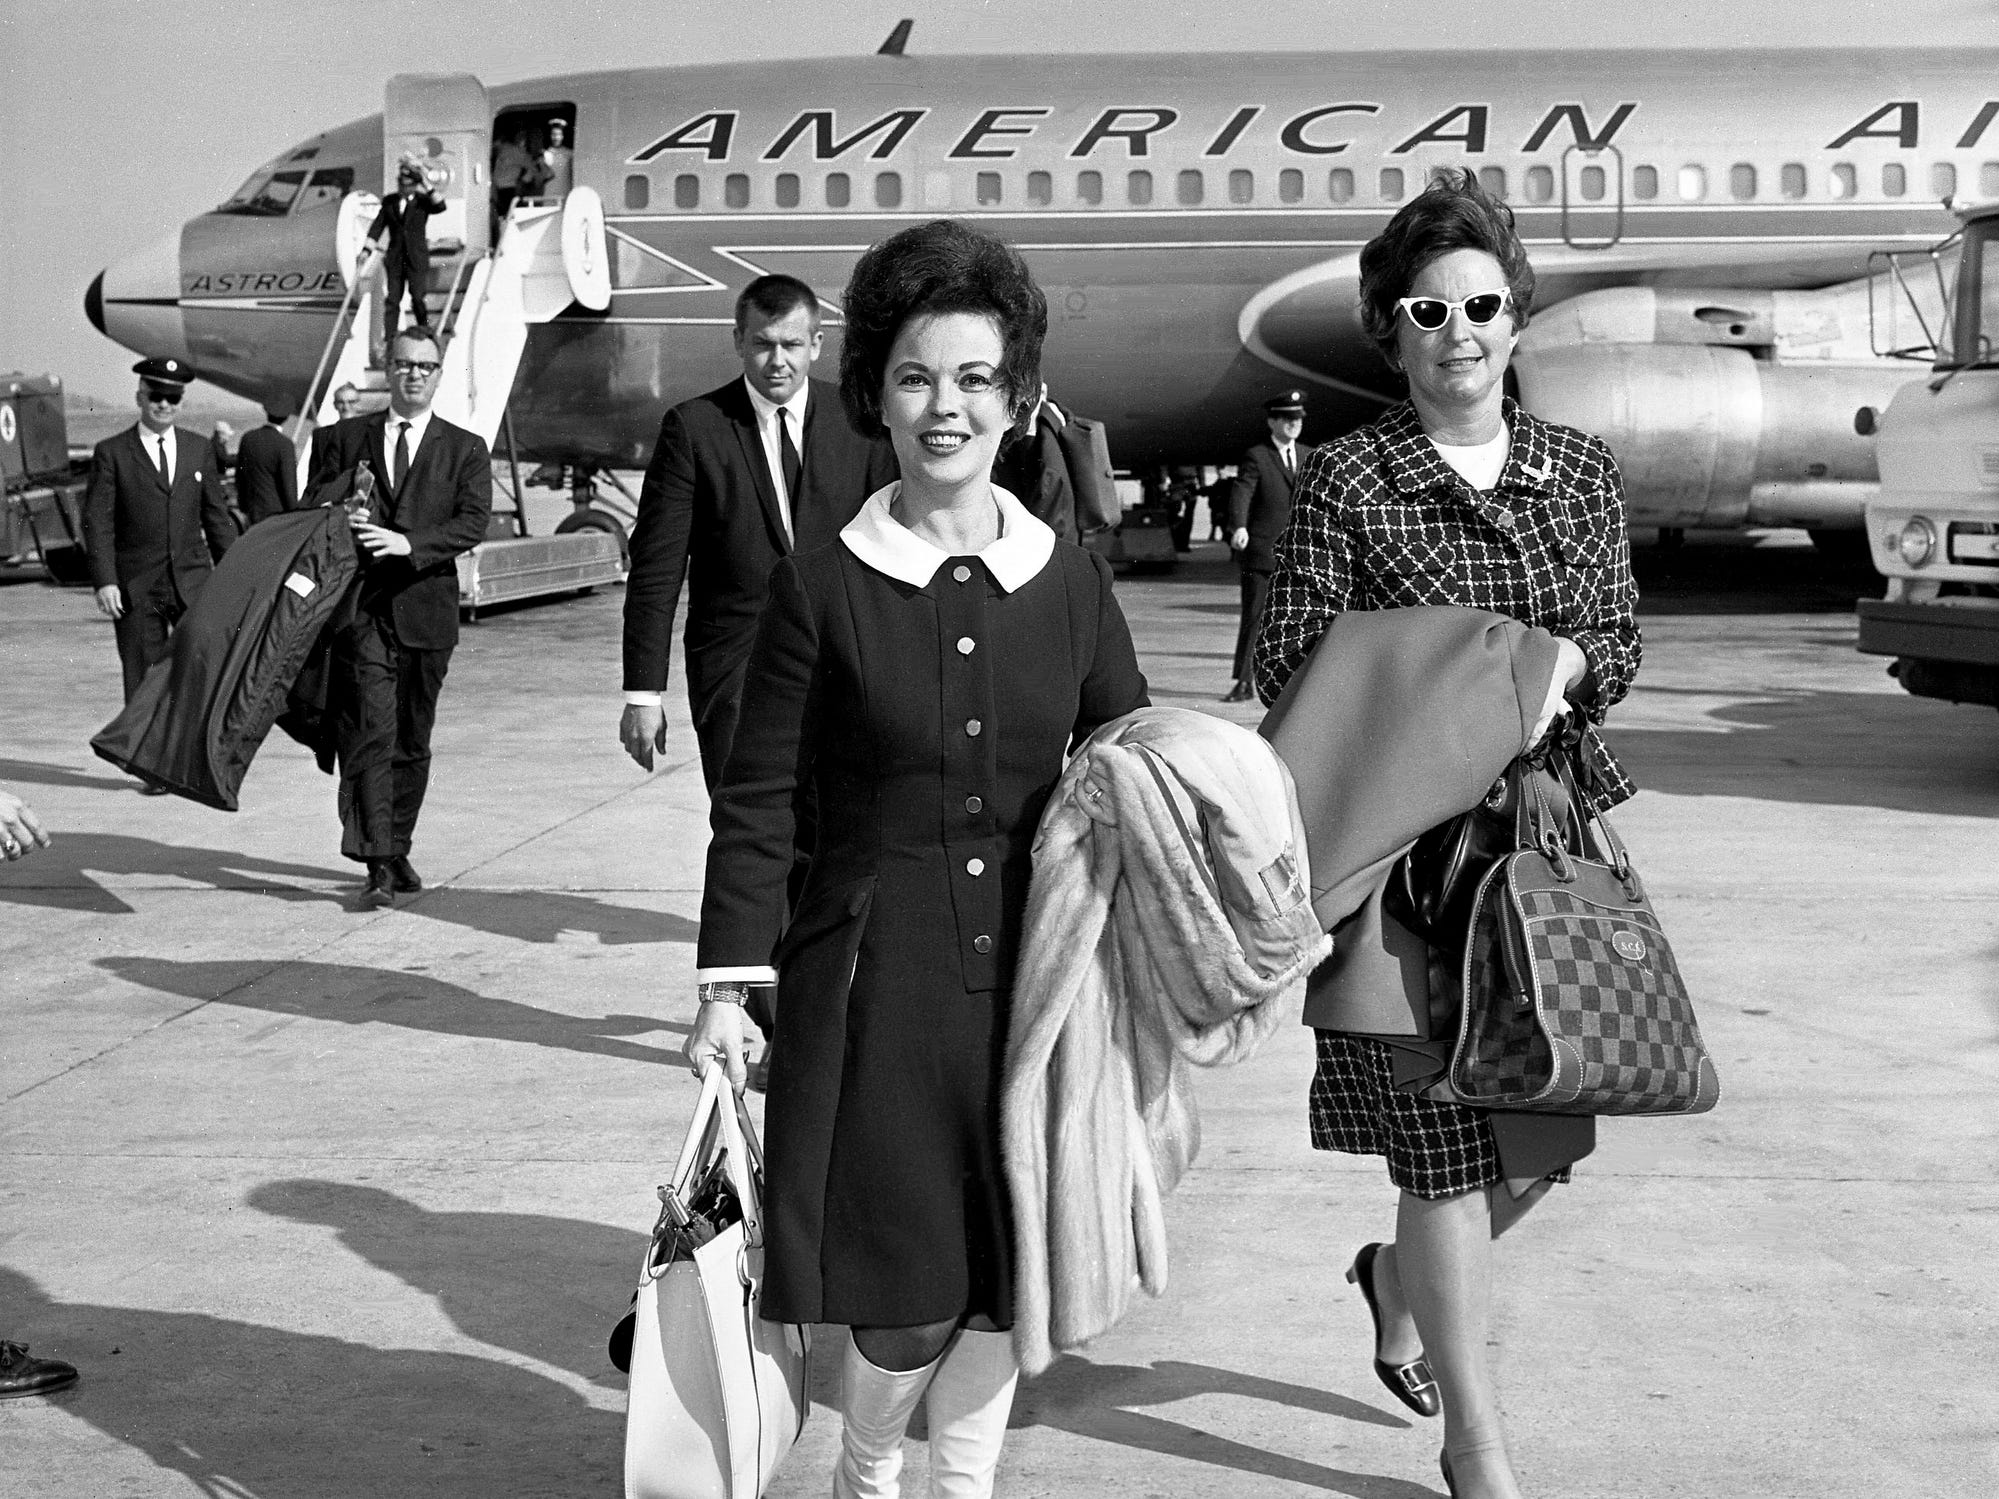 Shirley Temple Black, left, child star turned Republican crowd raiser, arrives at the Nashville Municipal Airport on March 8, 1968, with her traveling companion, Mrs. George Stewart, en route to Chattanooga to address a $100-a-plate GOP fundraising affair.